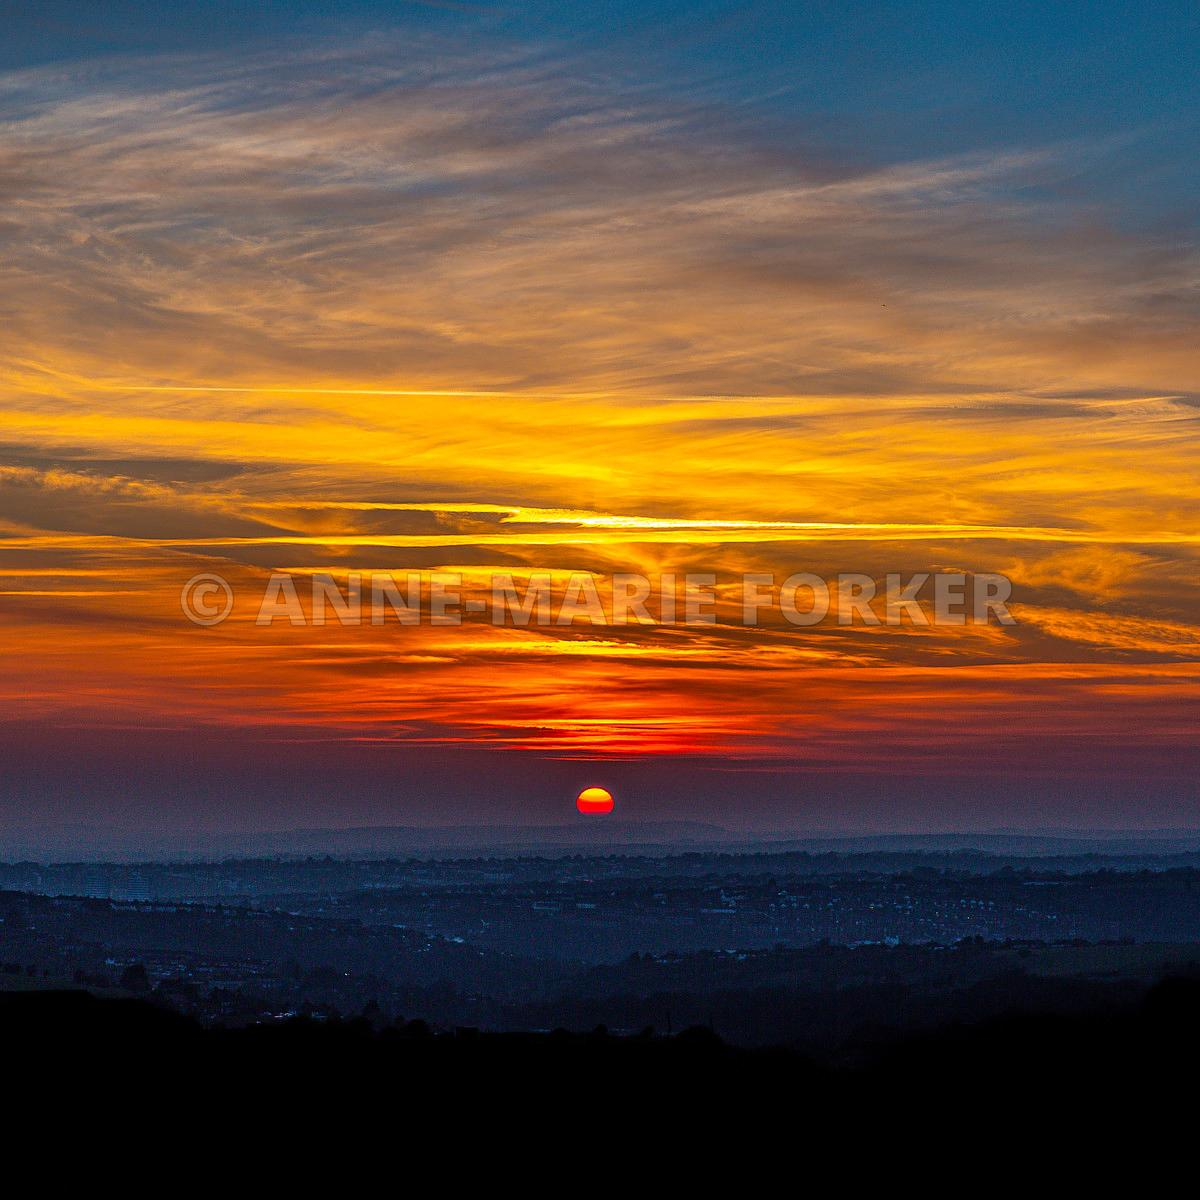 Sunset_-_by_Anne-Marie_Forker-8122